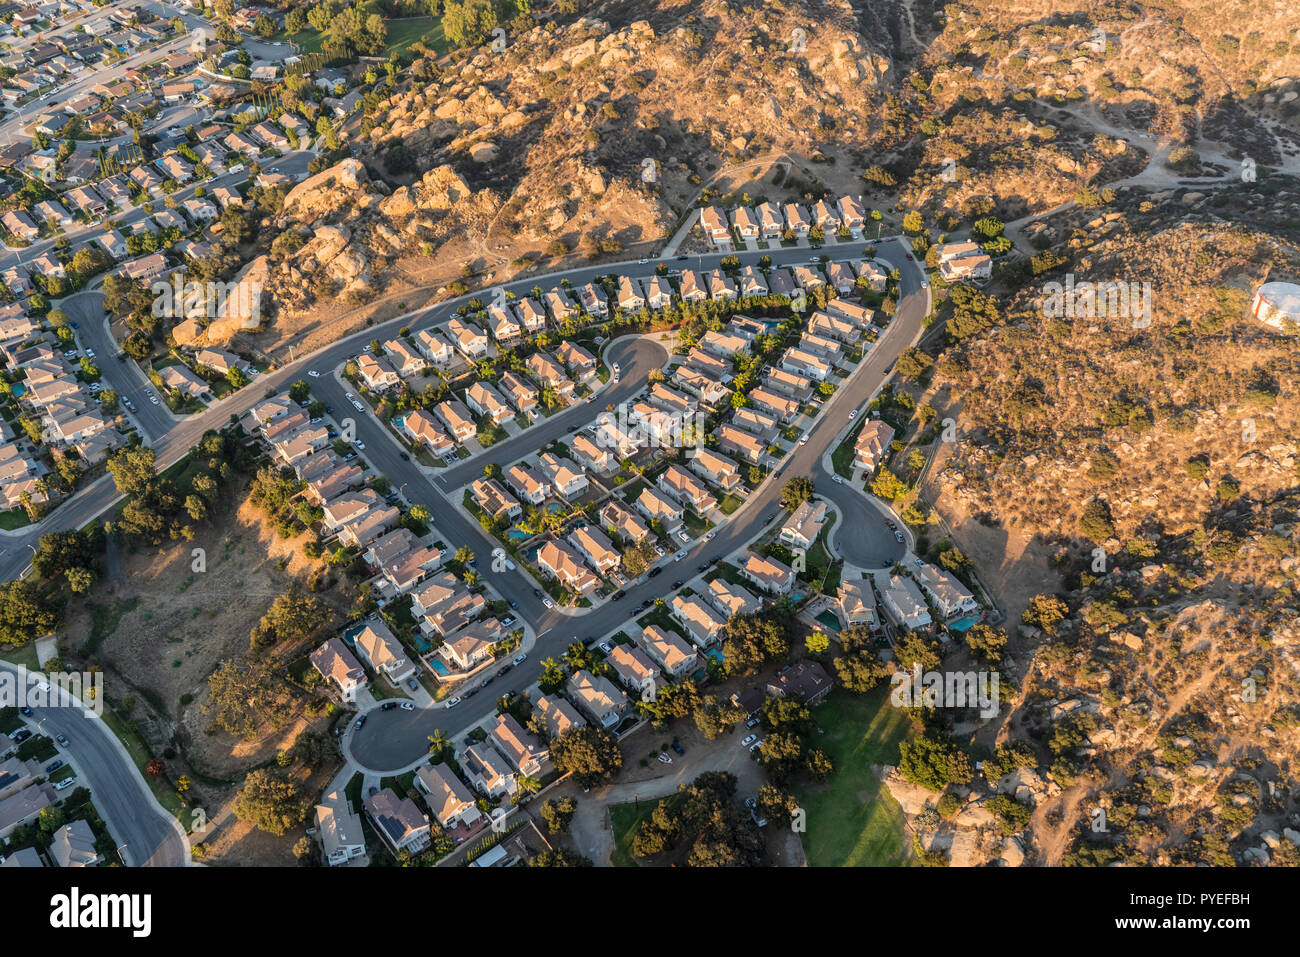 Aerial view of suburban cul-de-sac homes and streets near Los Angeles in Simi Valley, California. - Stock Image